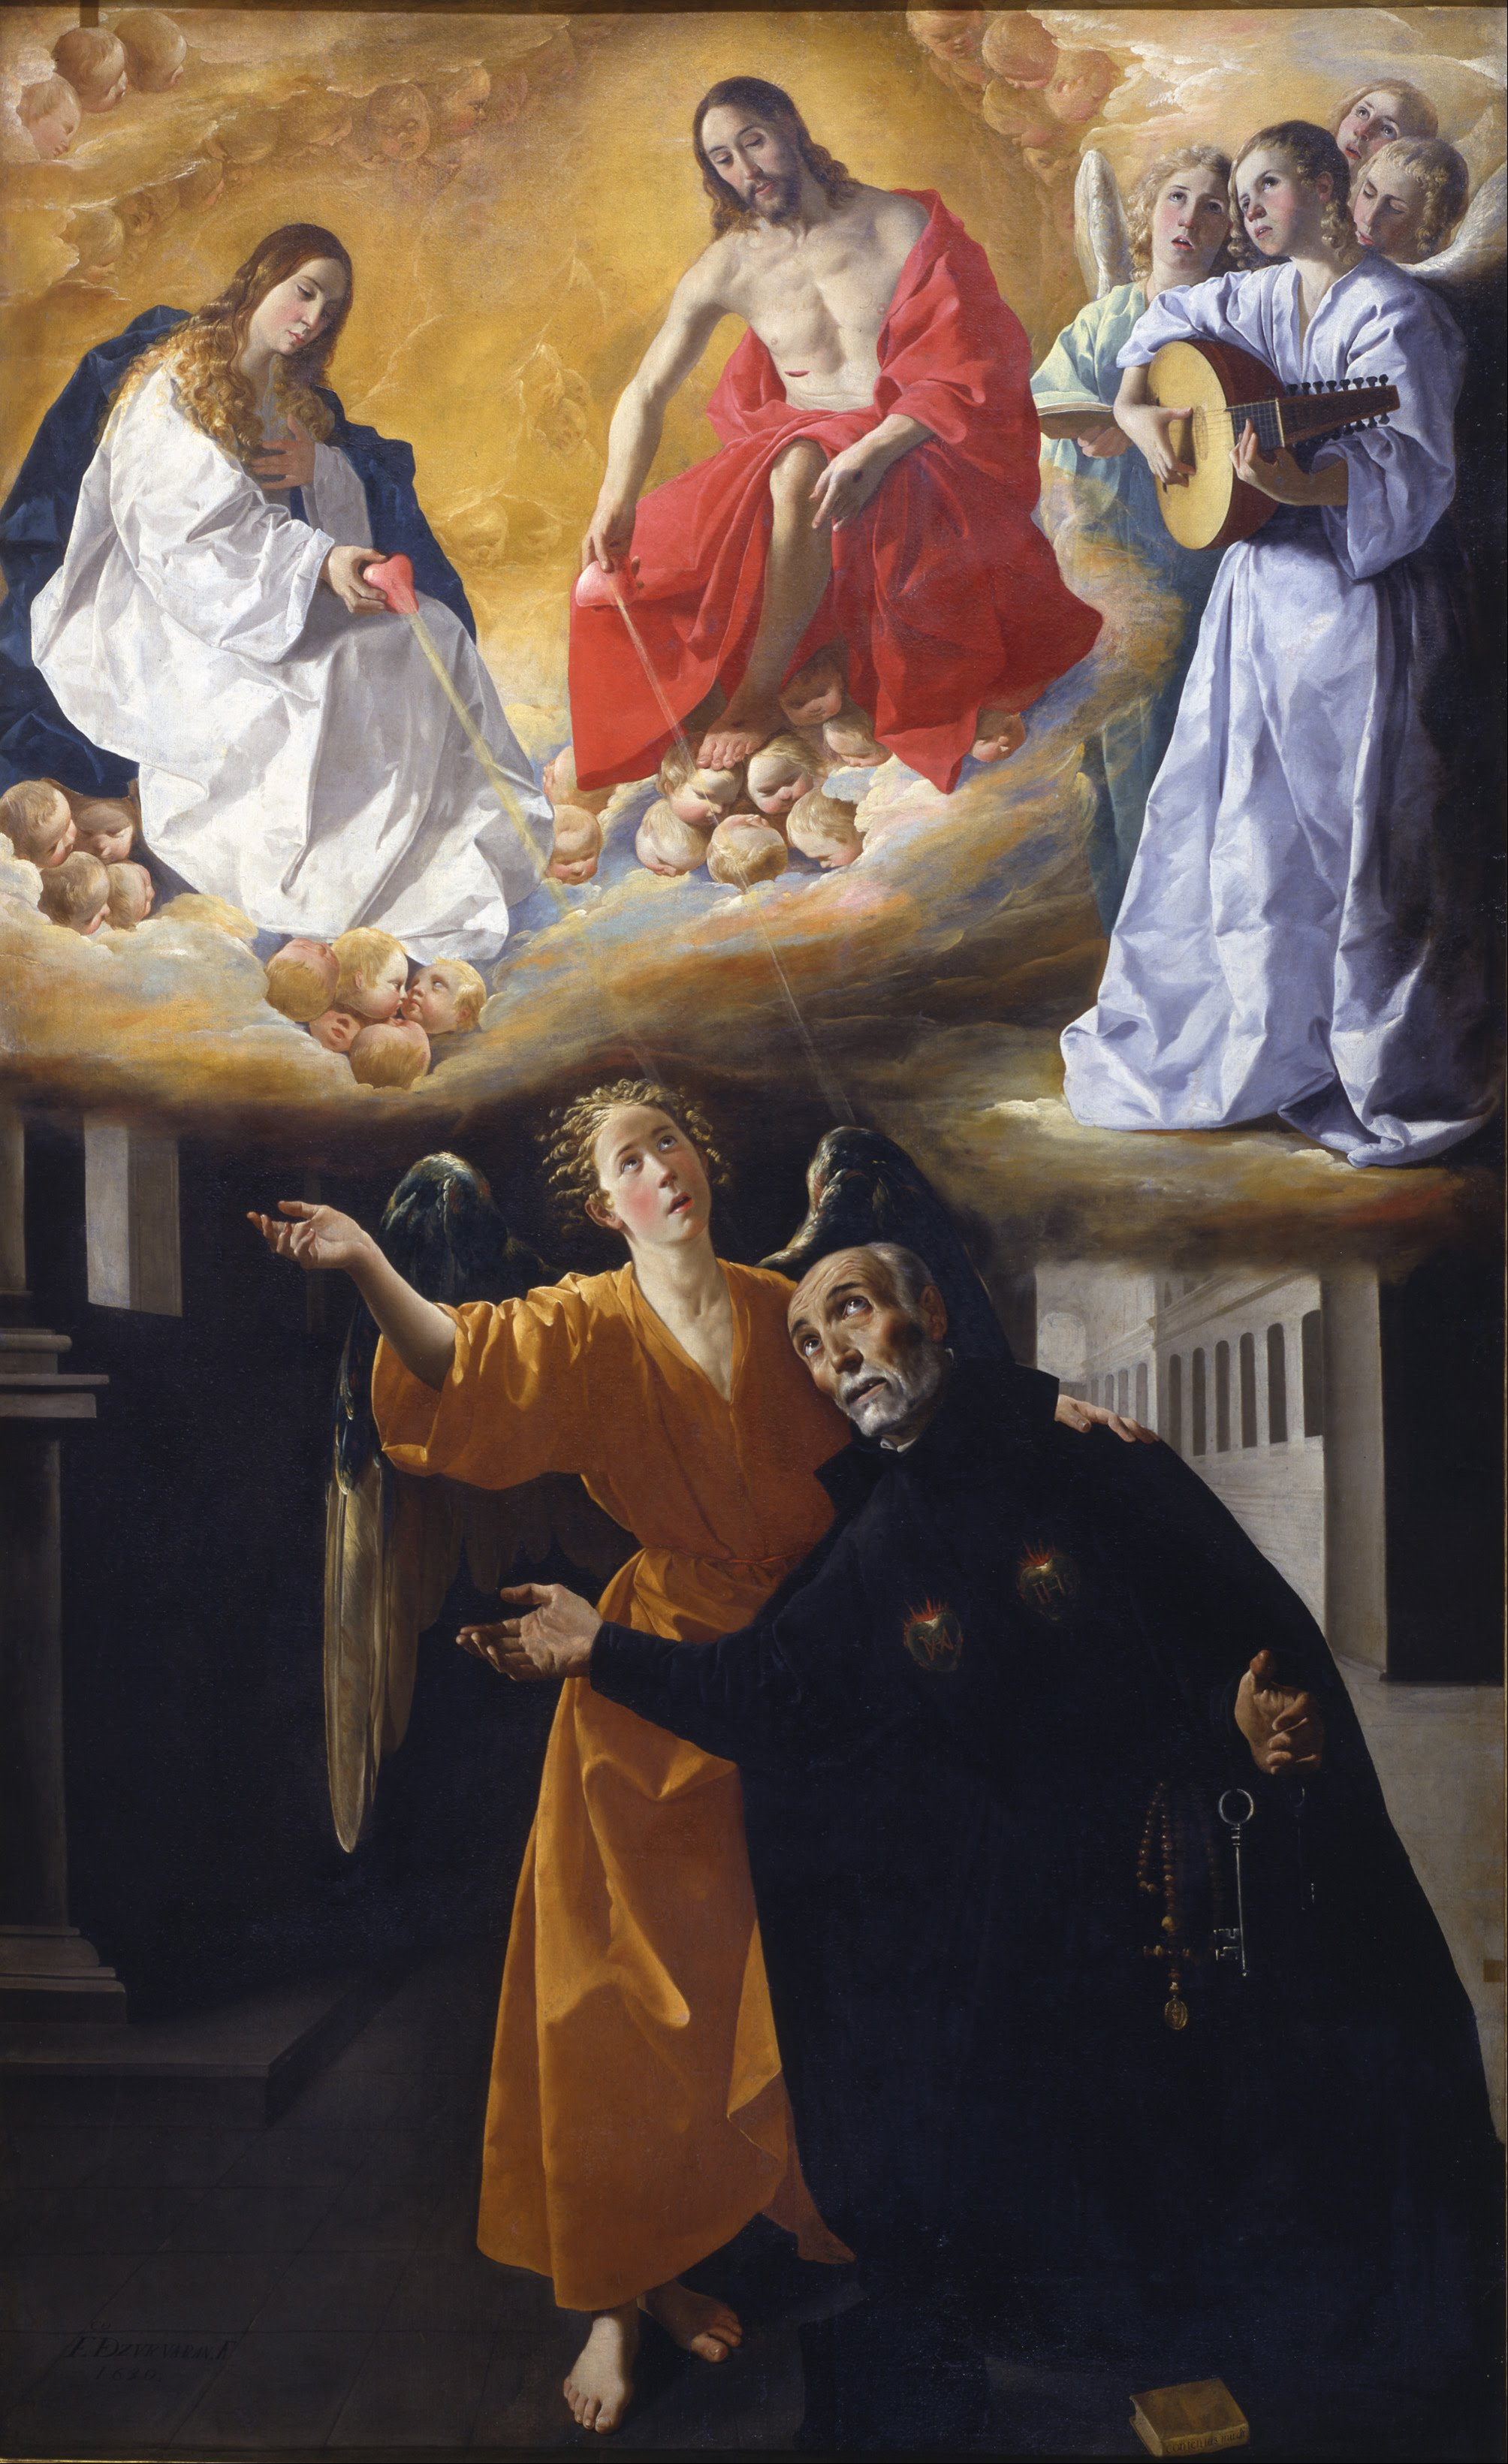 https://upload.wikimedia.org/wikipedia/commons/0/0a/Francisco_de_Zurbar%C3%A1n_-_Visi%C3%B3n_del_Beato_Alonso_Rodr%C3%ADguez_-_Google_Art_Project.jpg